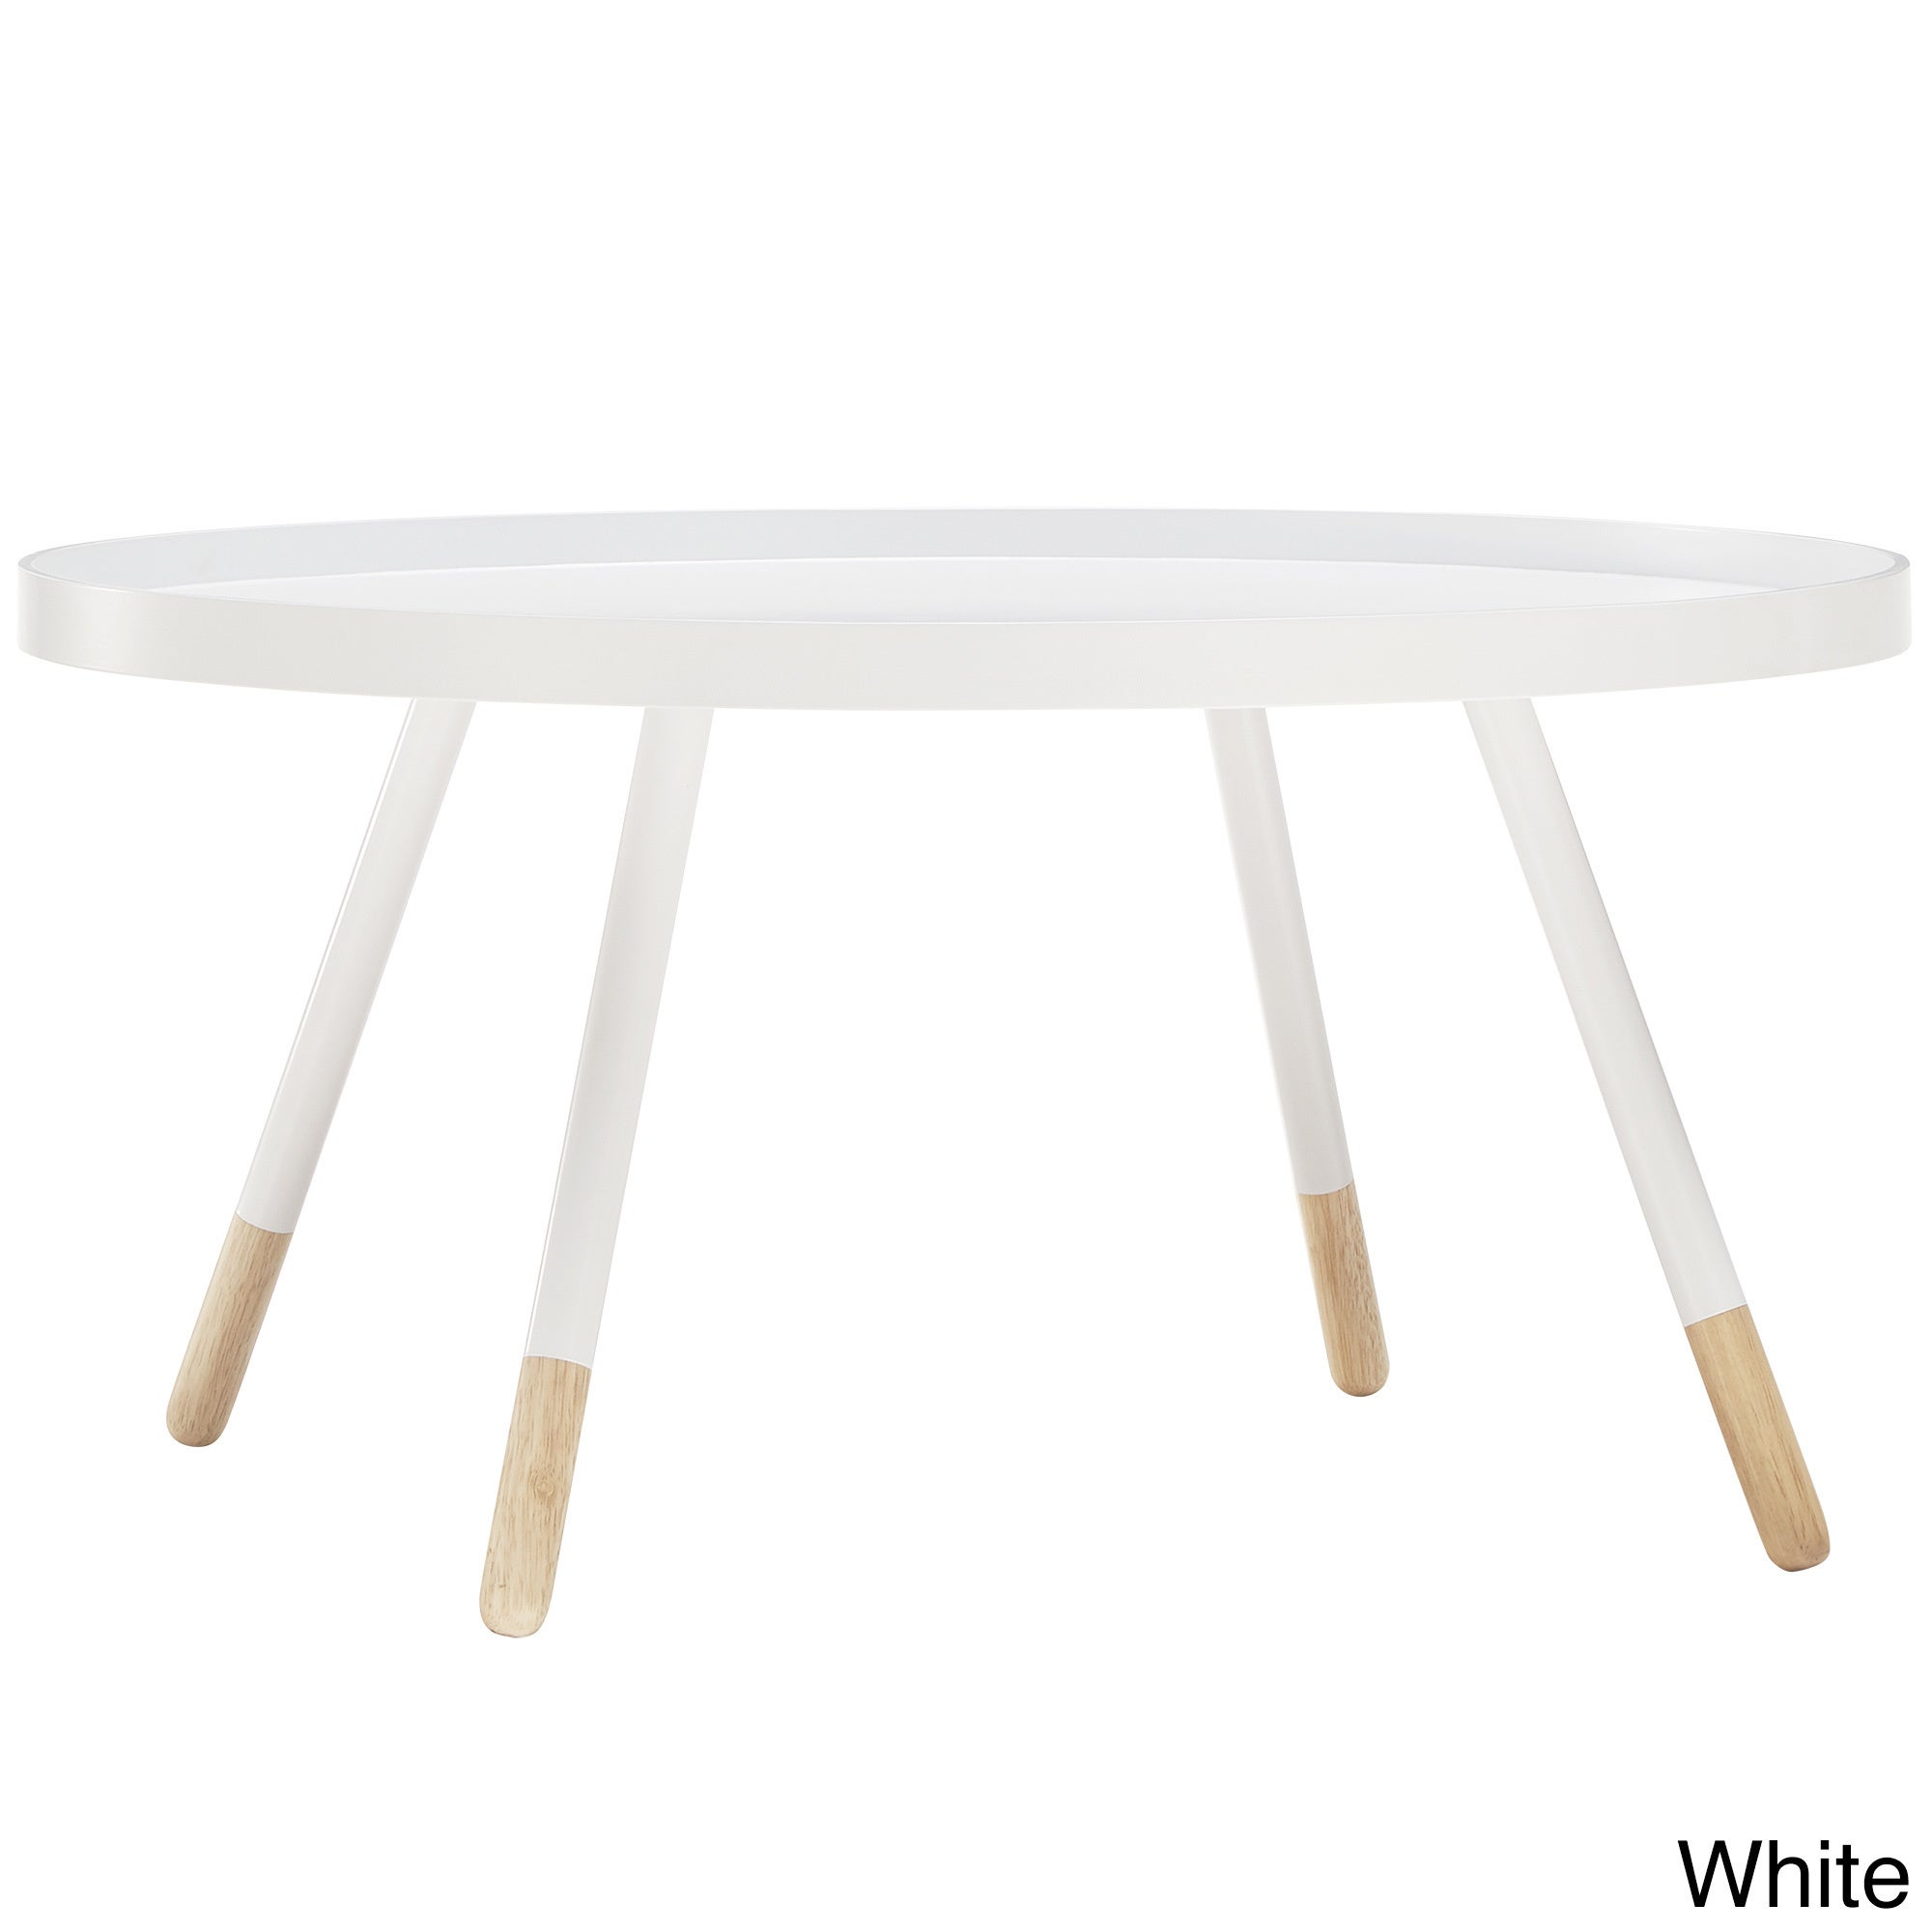 Marcella Paint-dipped Round Spindle Tray Top Coffee Table...